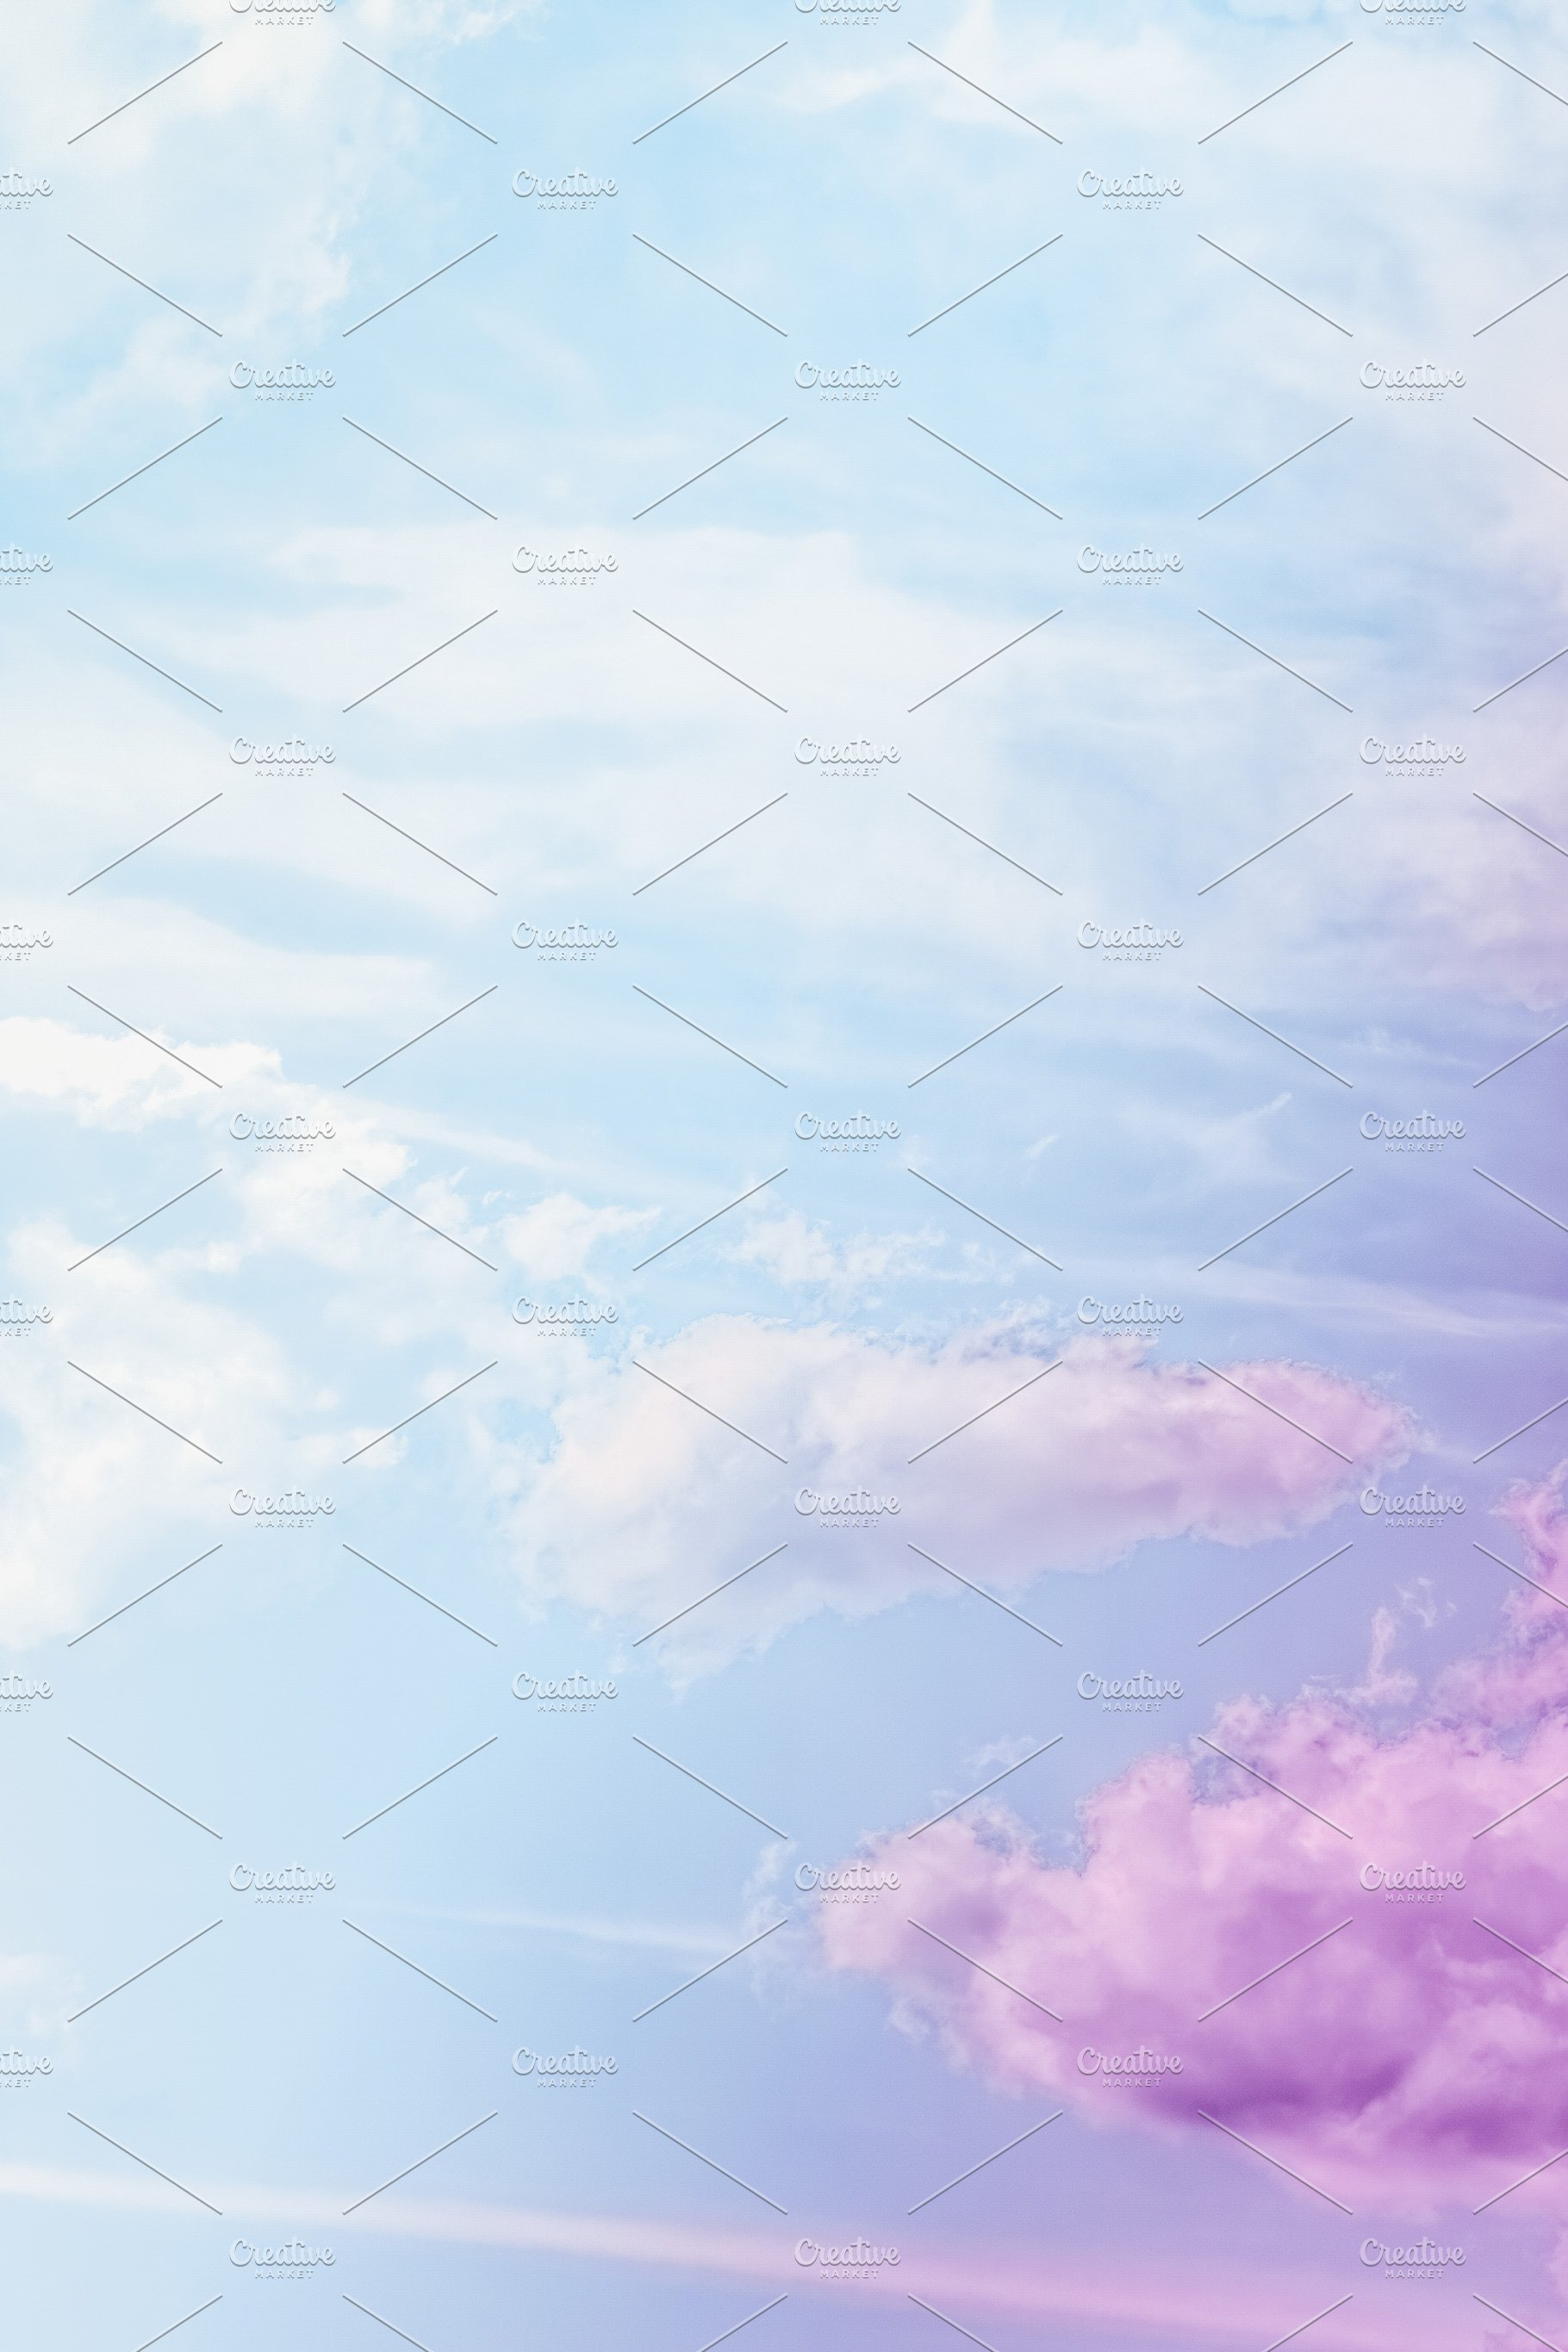 Download 470+ Background Abstract Sky Blue Paling Keren